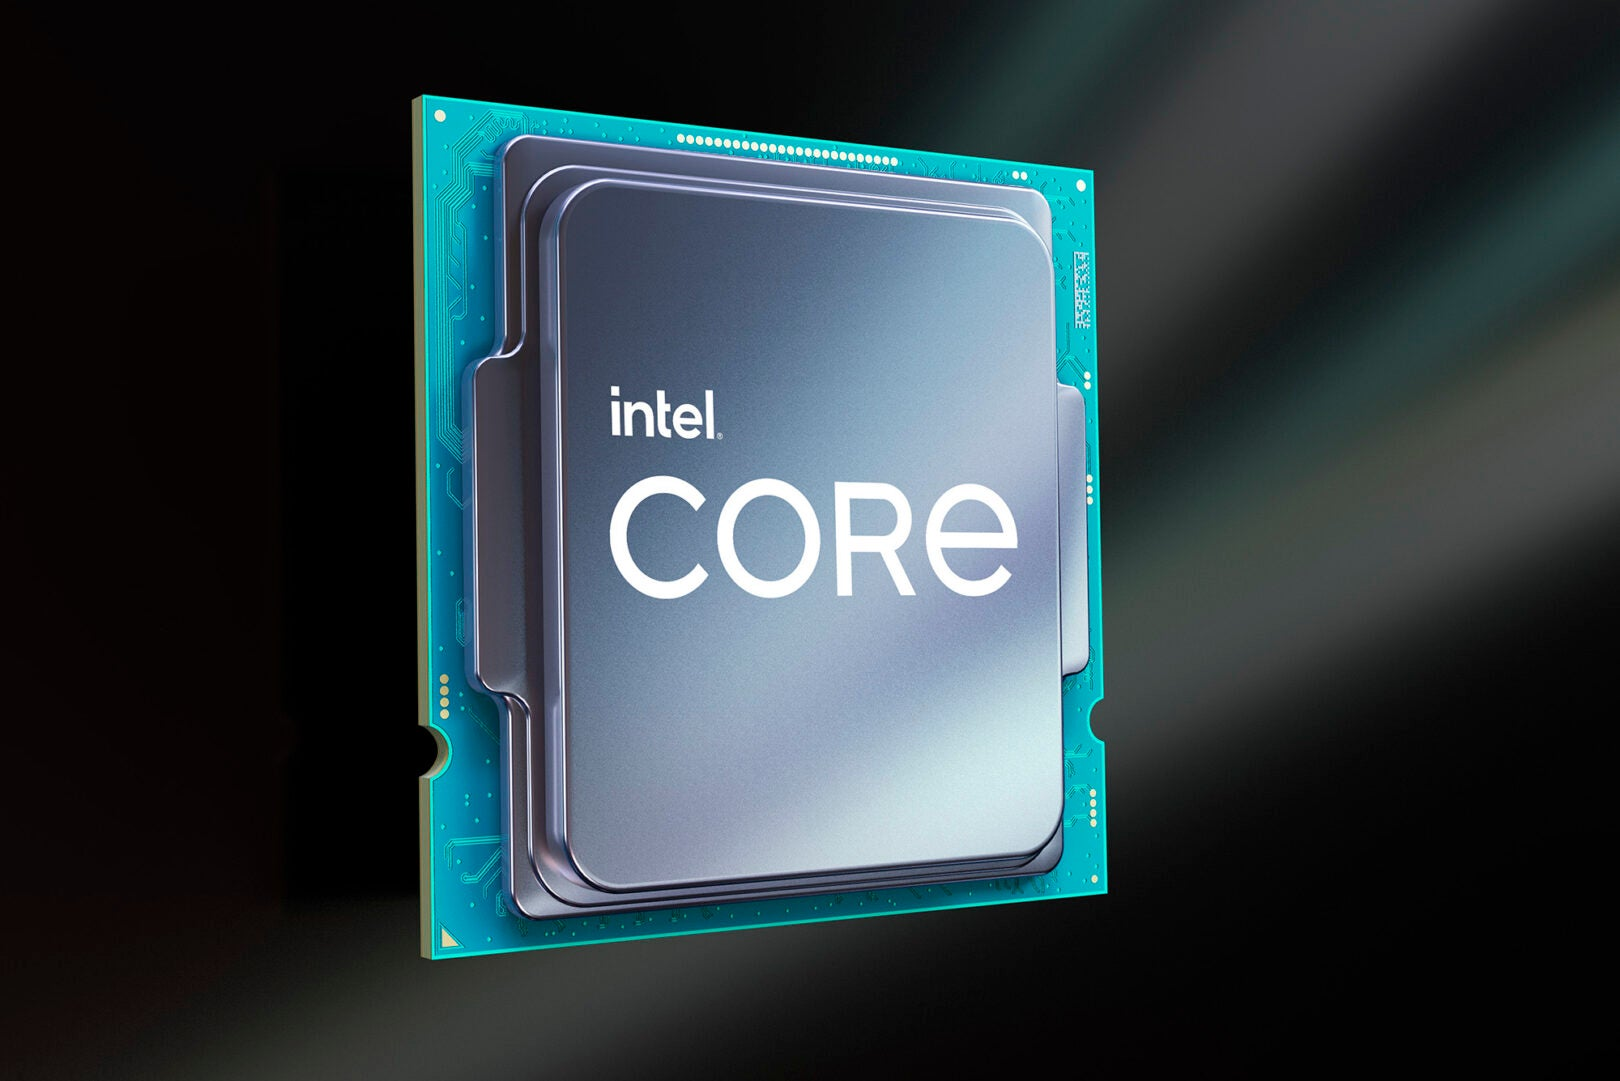 Intel isn't taking being dumped for Apple's M1 chip very well at all